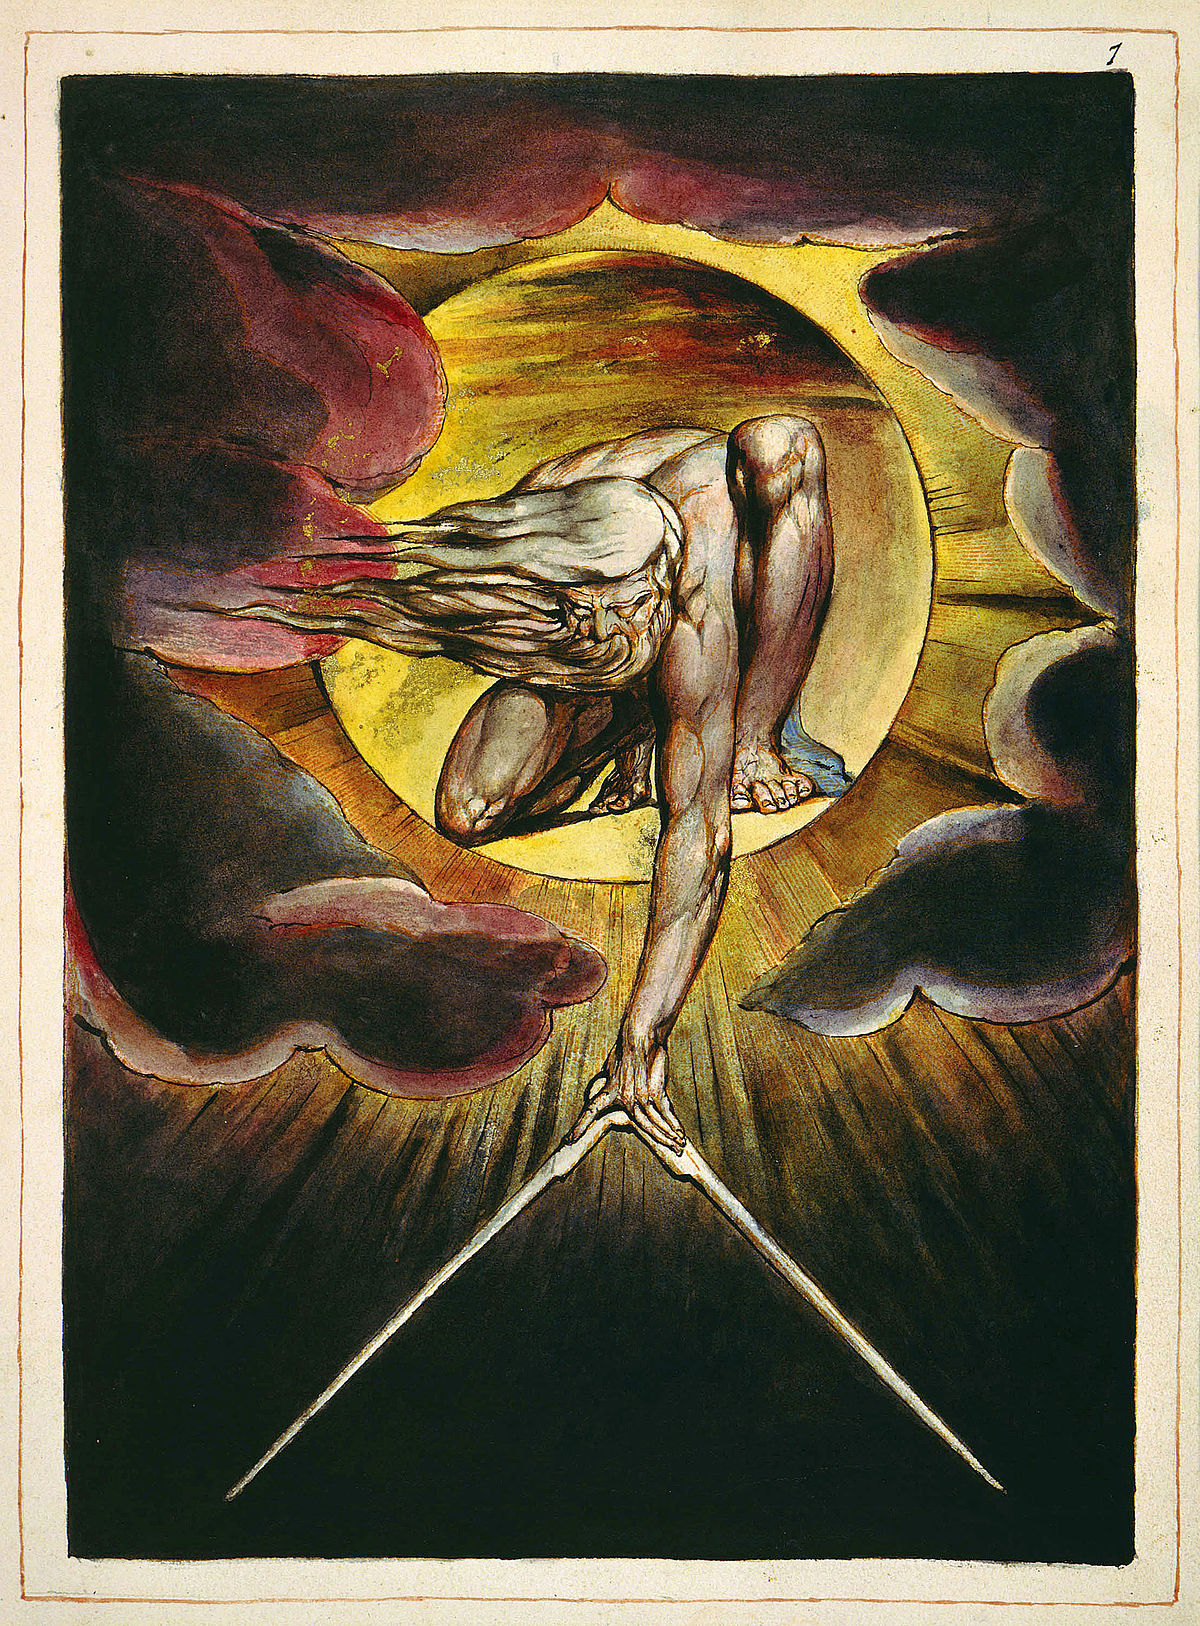 Solstice: Europe: A Prophecy by William Blake